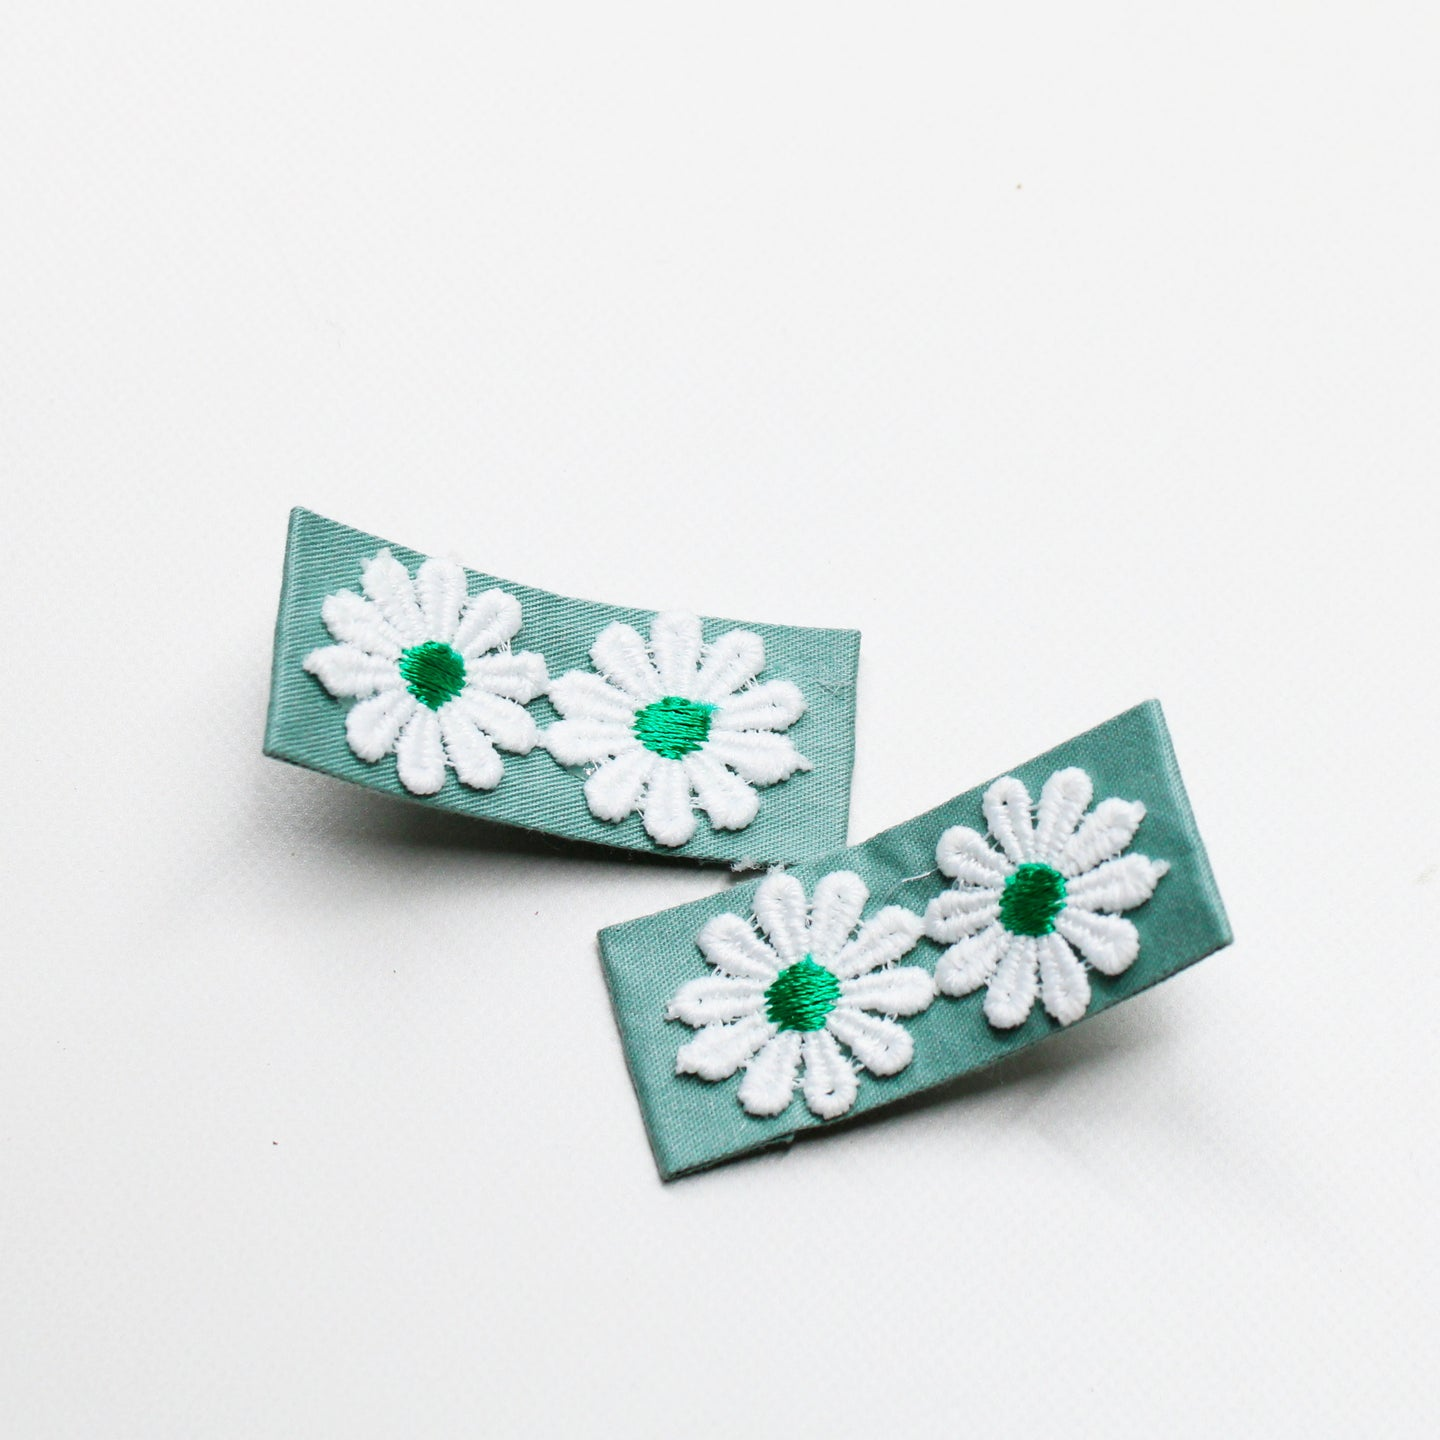 Daisy Floral Fabric Clips - Teal